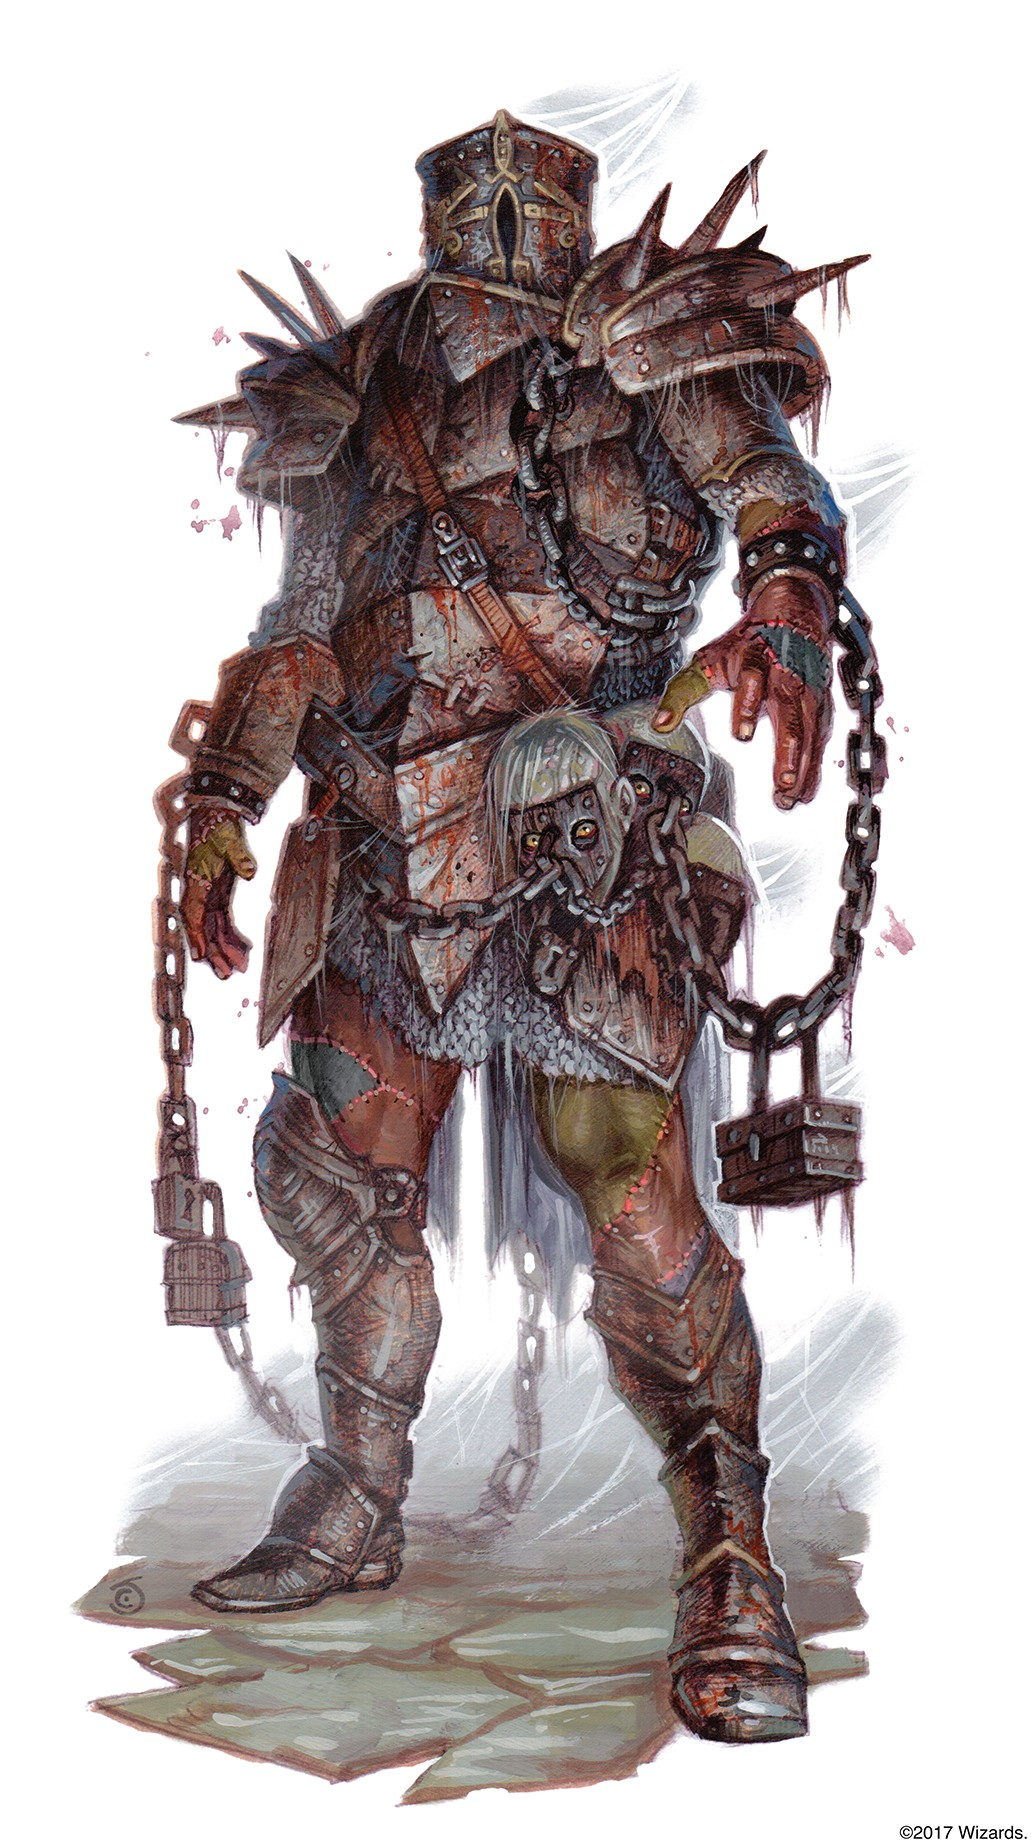 A tomb guardian clad in iron armor with chains and blood surrounding it.